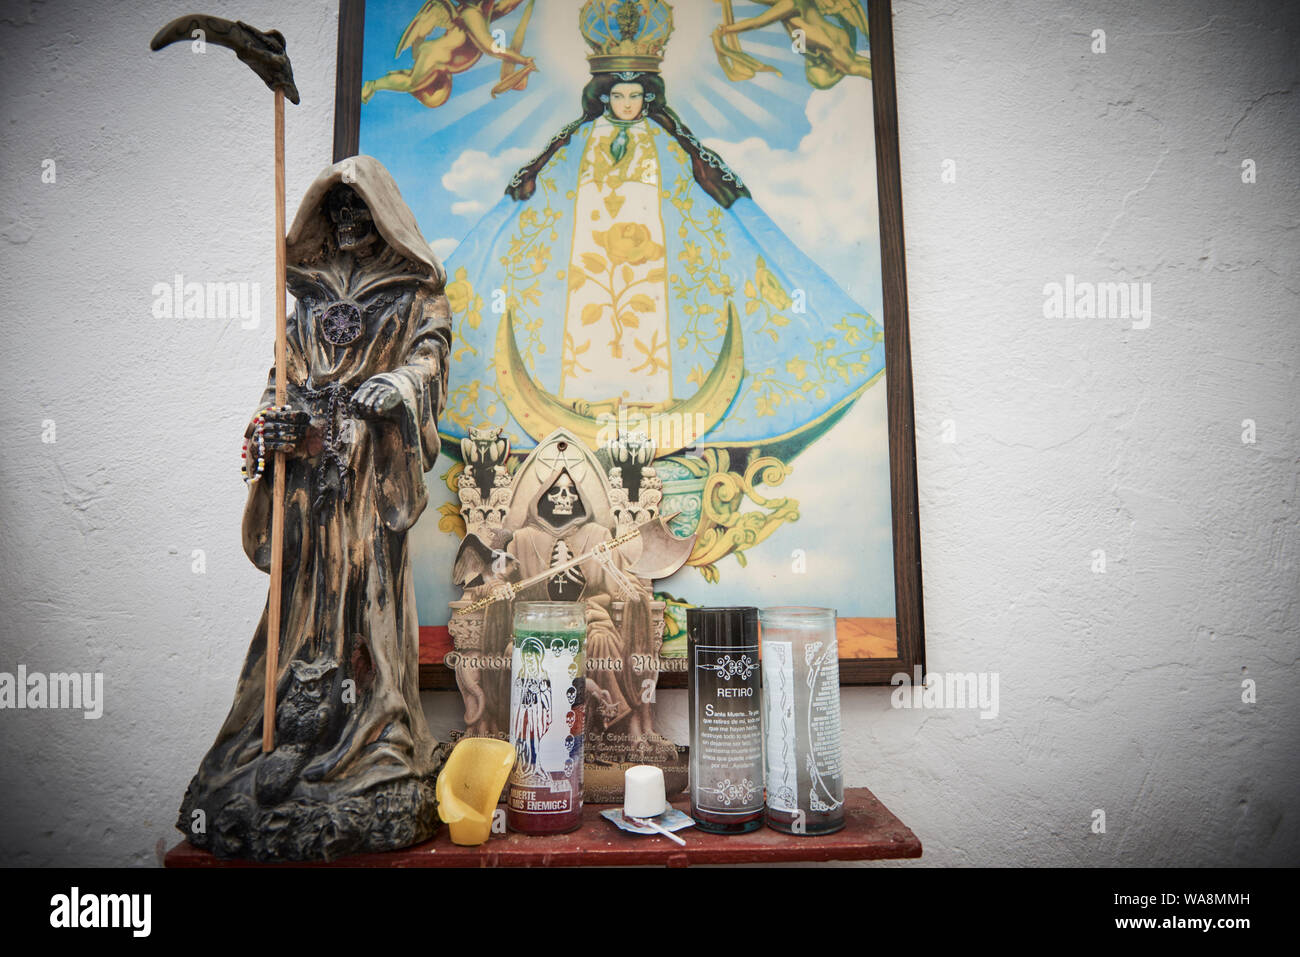 Santa Muerte Shrine Stock Photos & Santa Muerte Shrine Stock